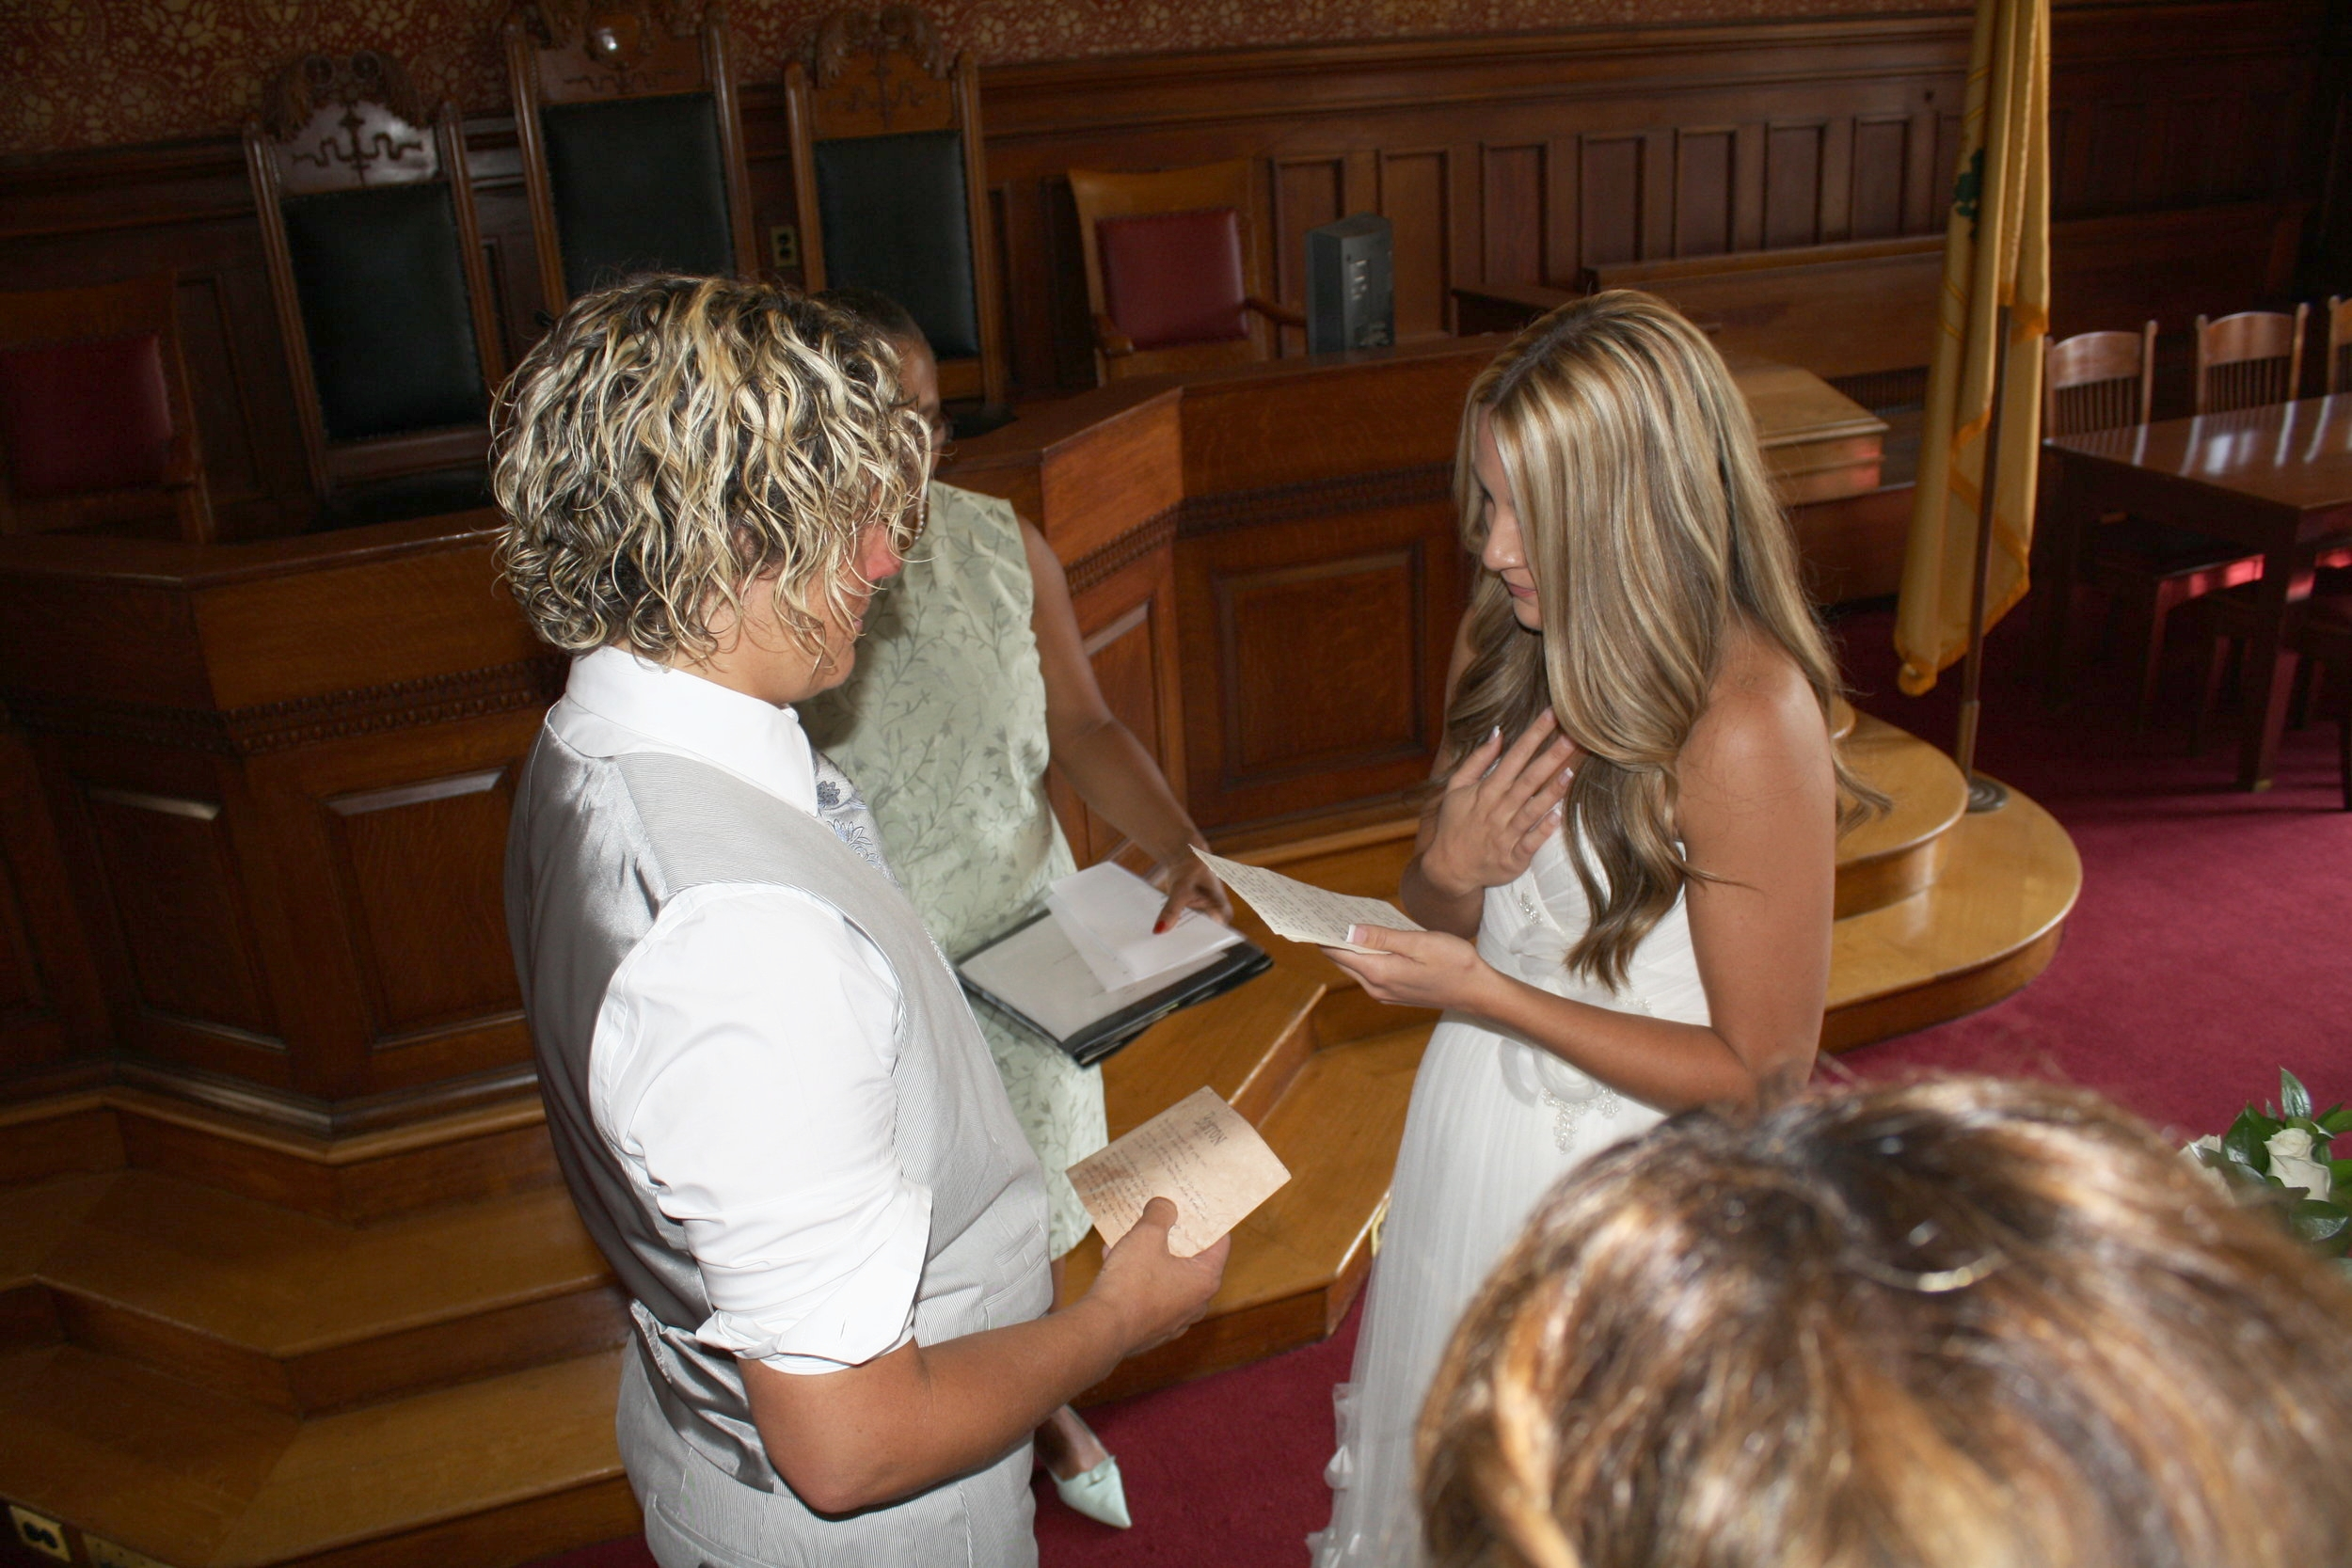 Sharing our wedding vows.